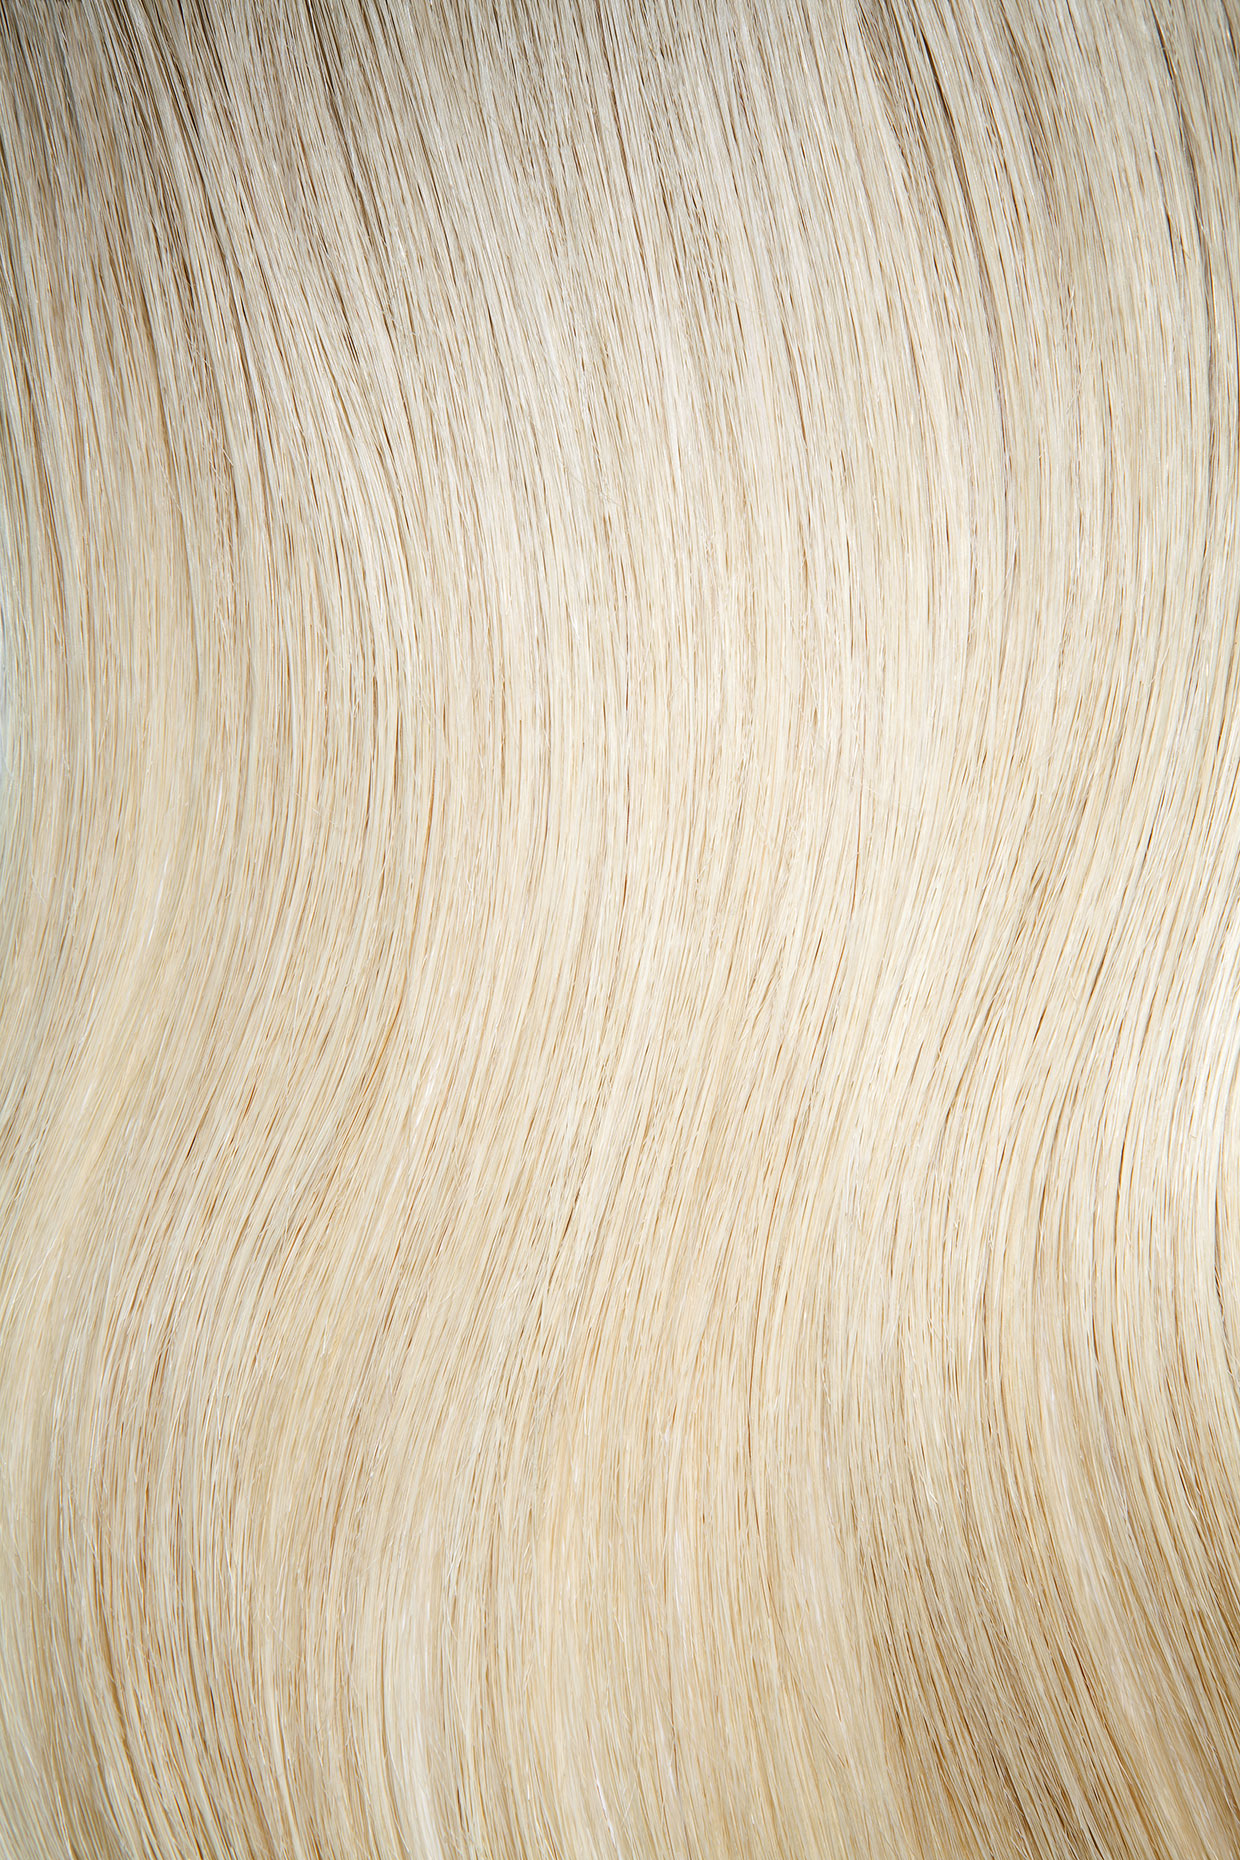 Tight shot of shiny blond hair.